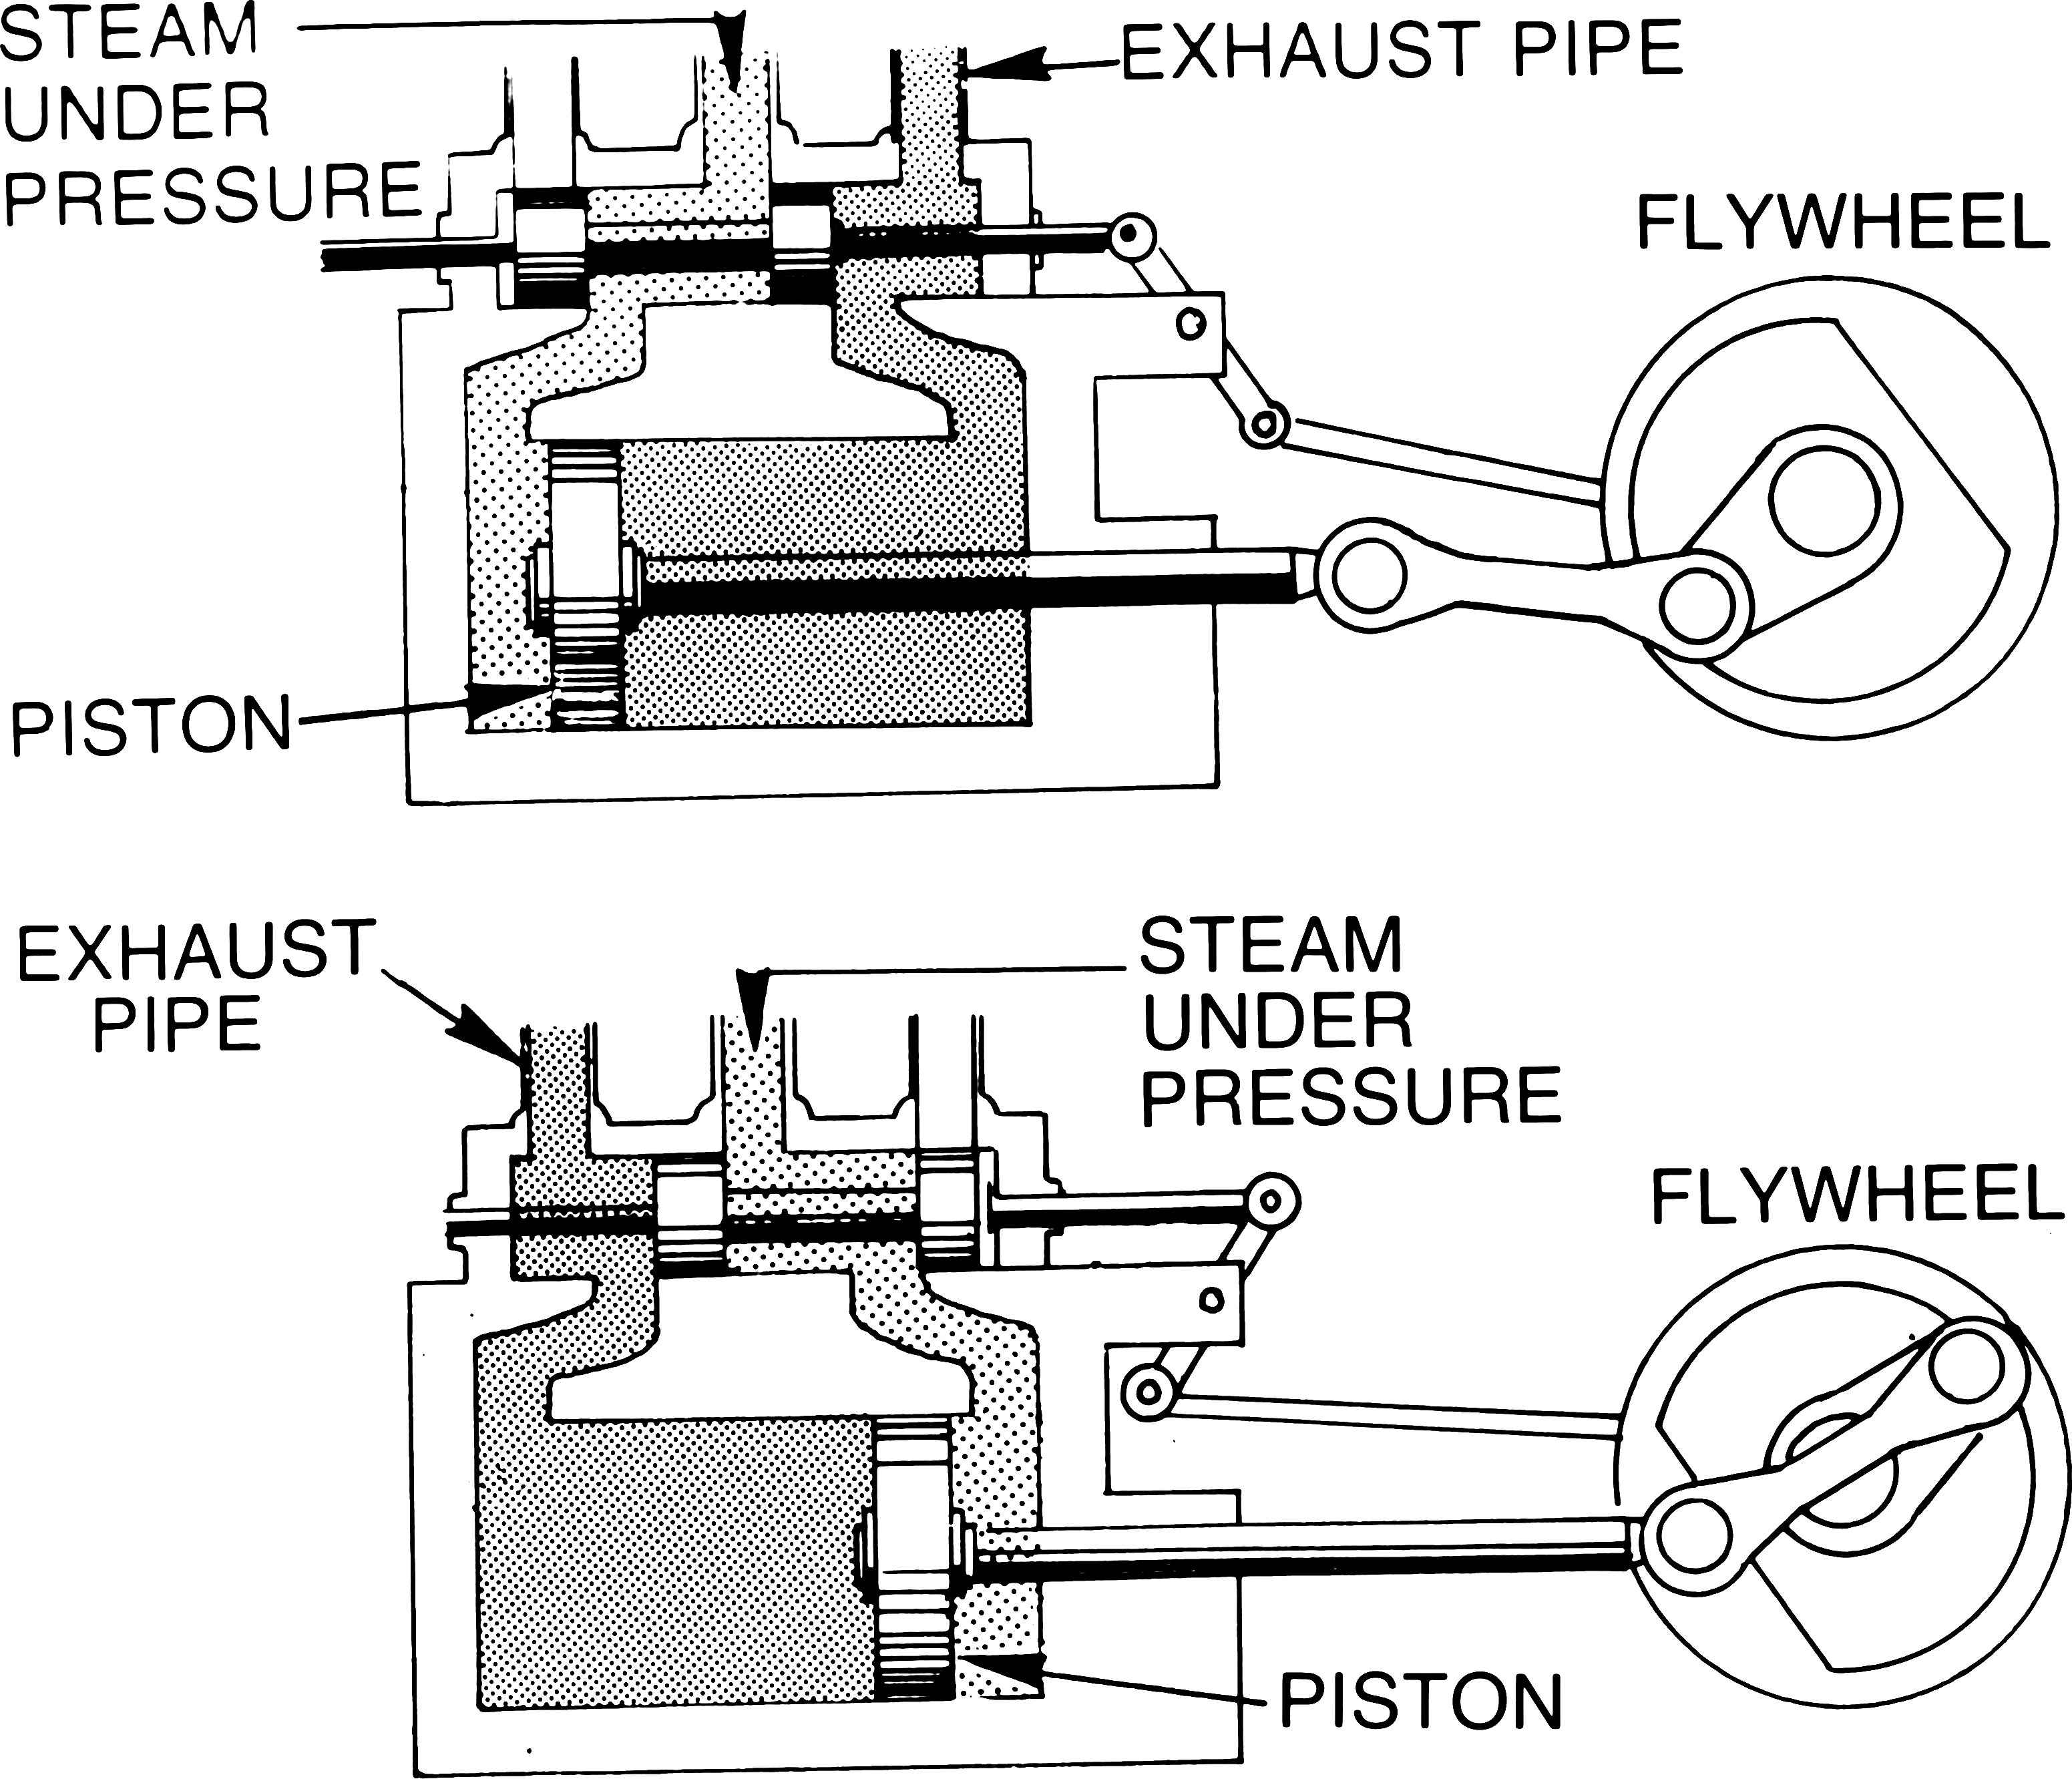 File:Steam engine (PSF).png - Wikimedia Commons